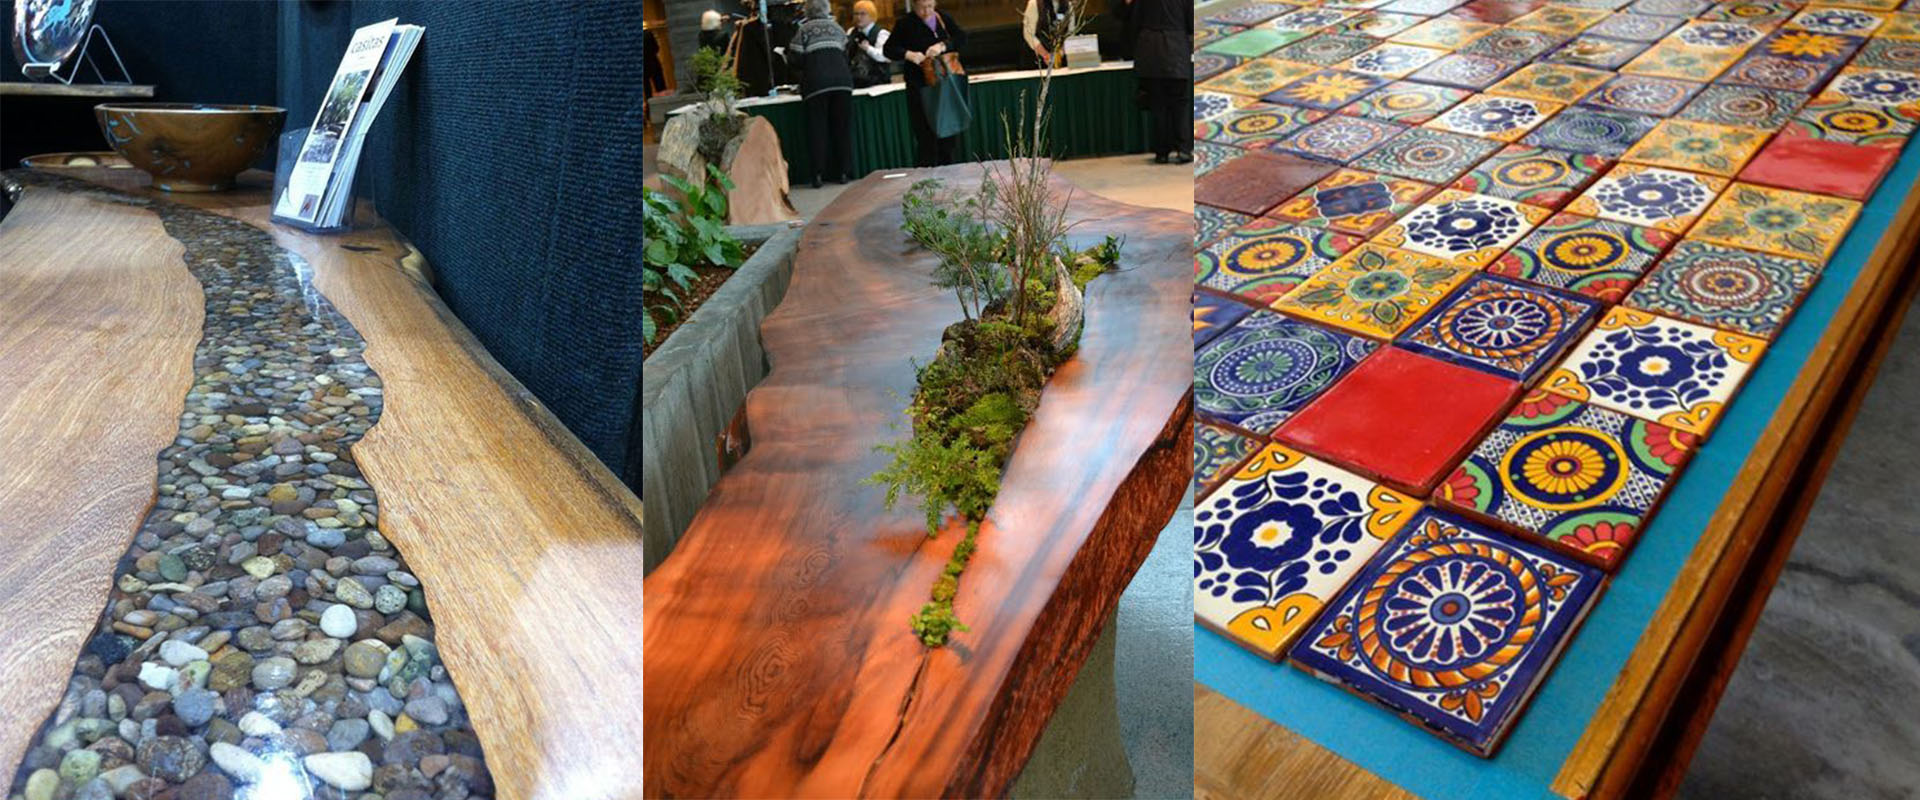 6 times when Countertops became the most versatile table tops